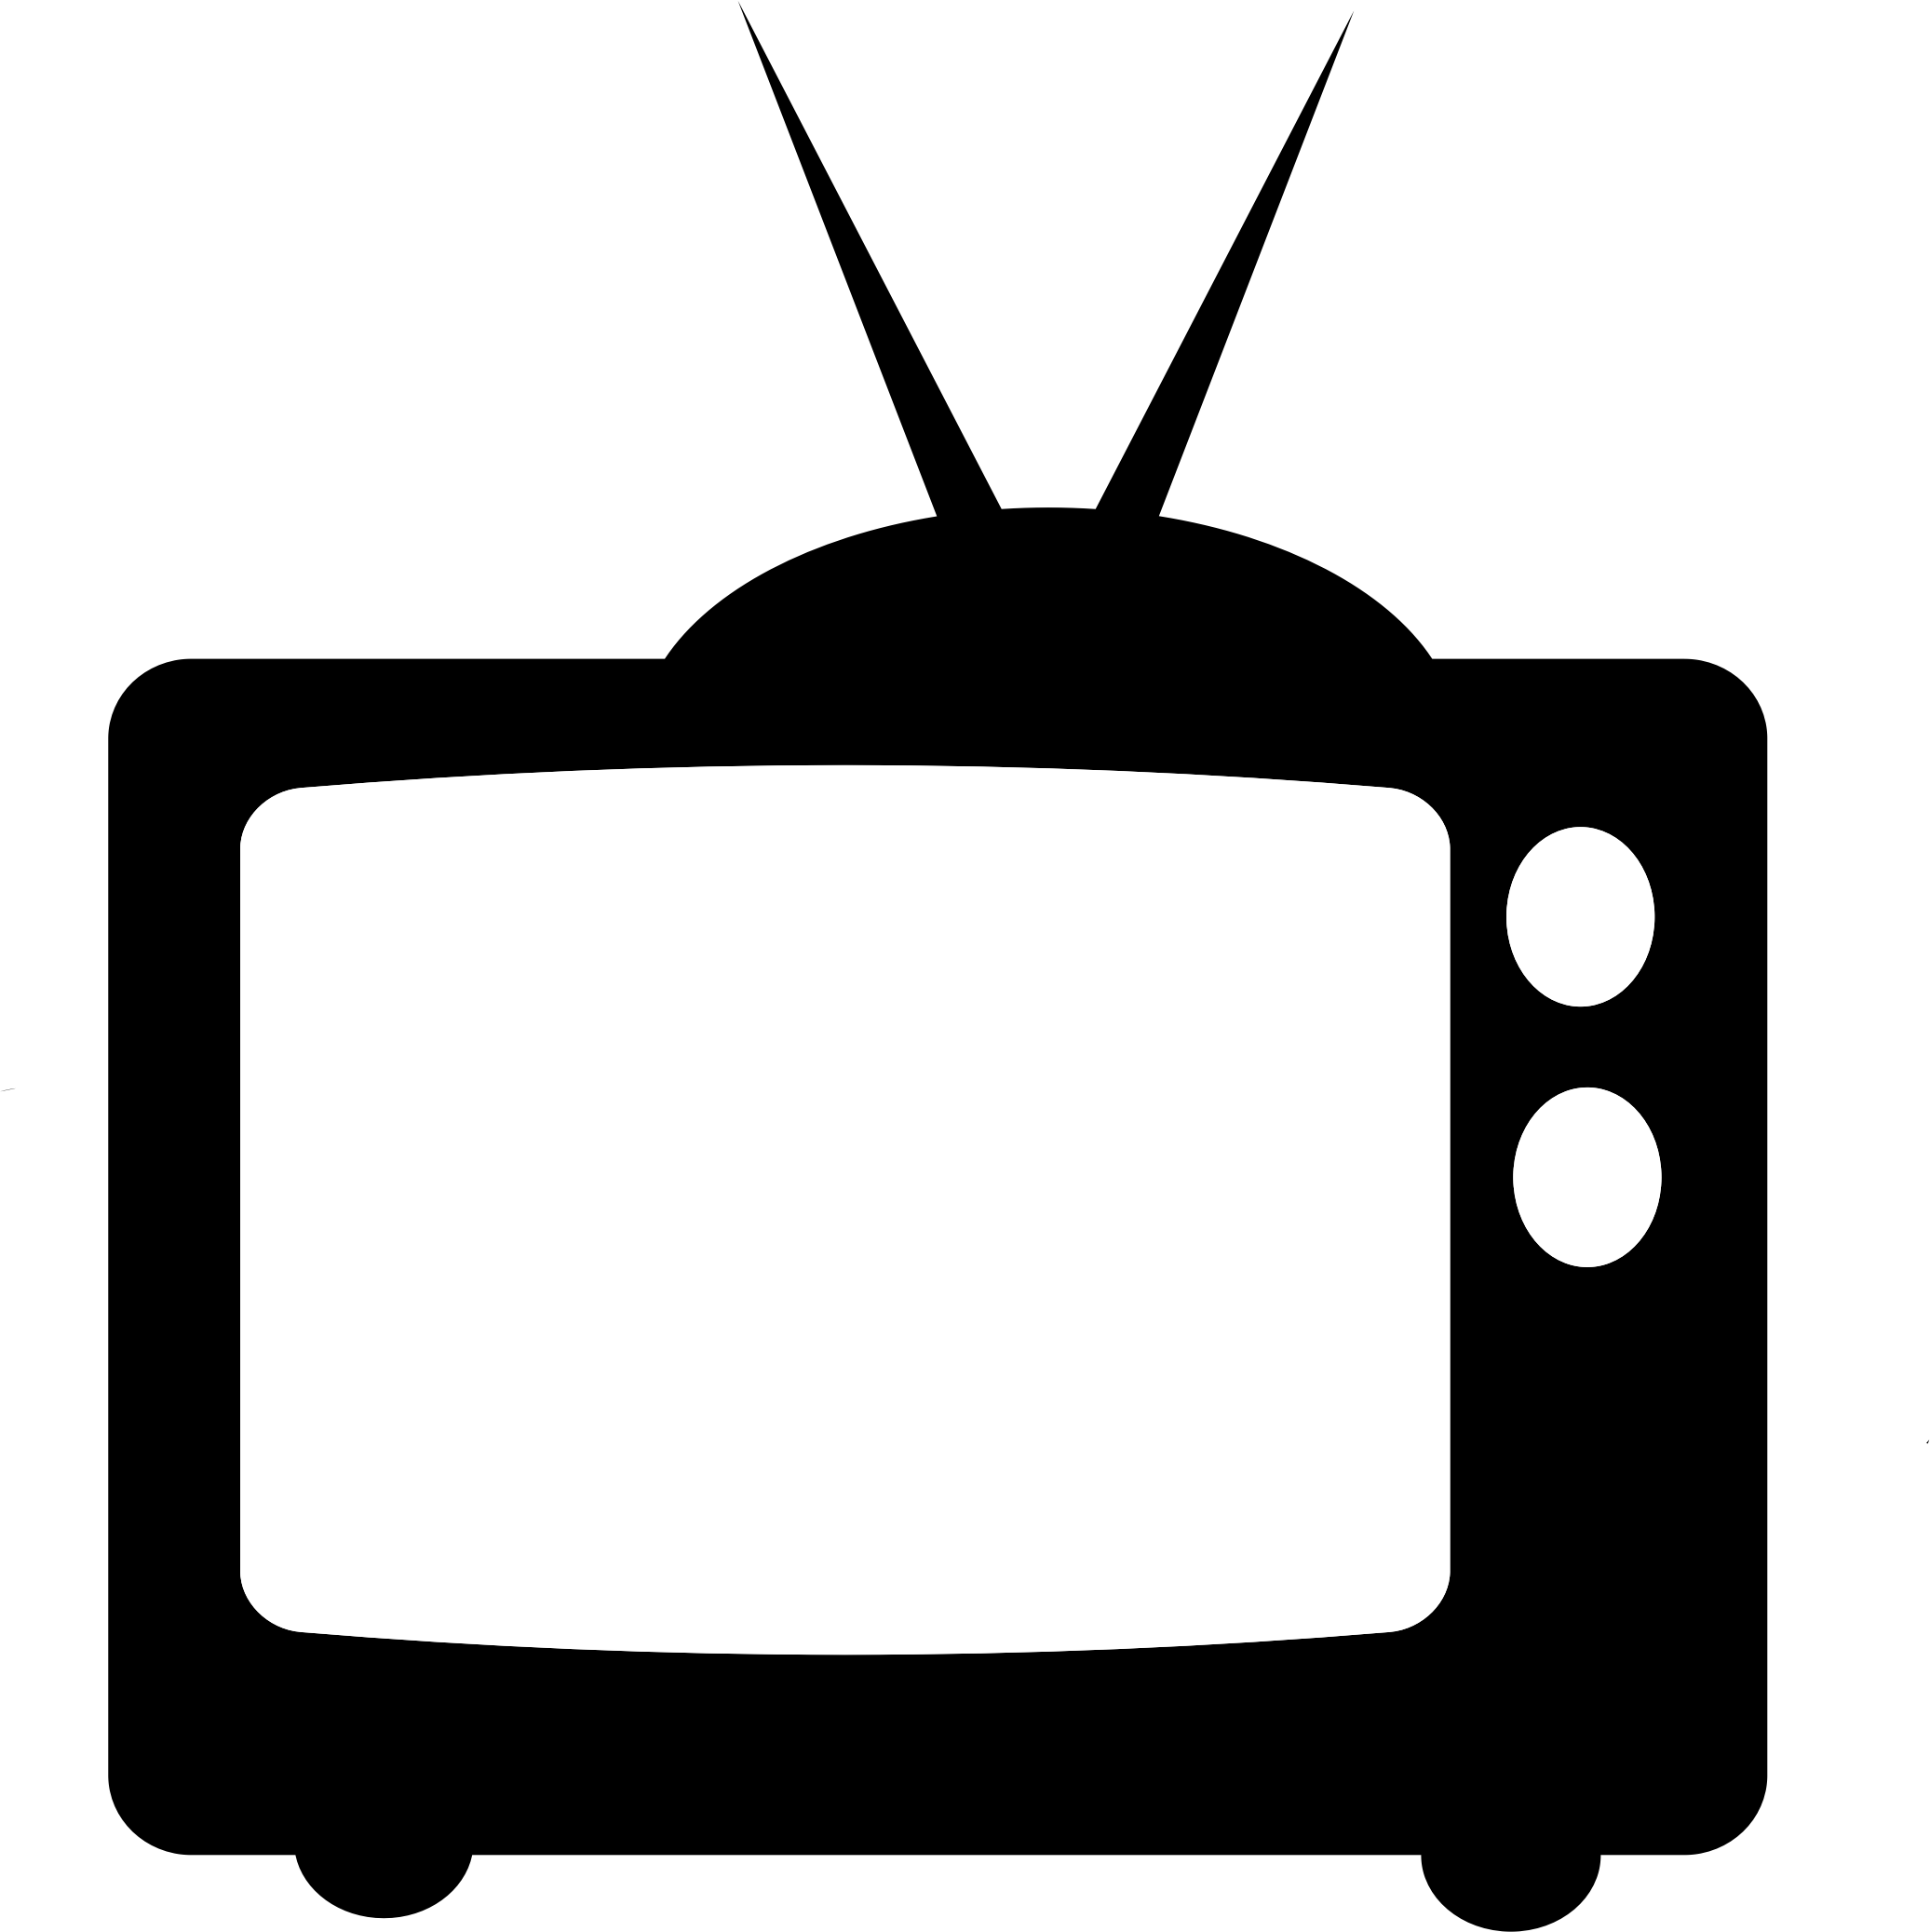 Tv clipart Images television%20clipart Panda Clipart Free